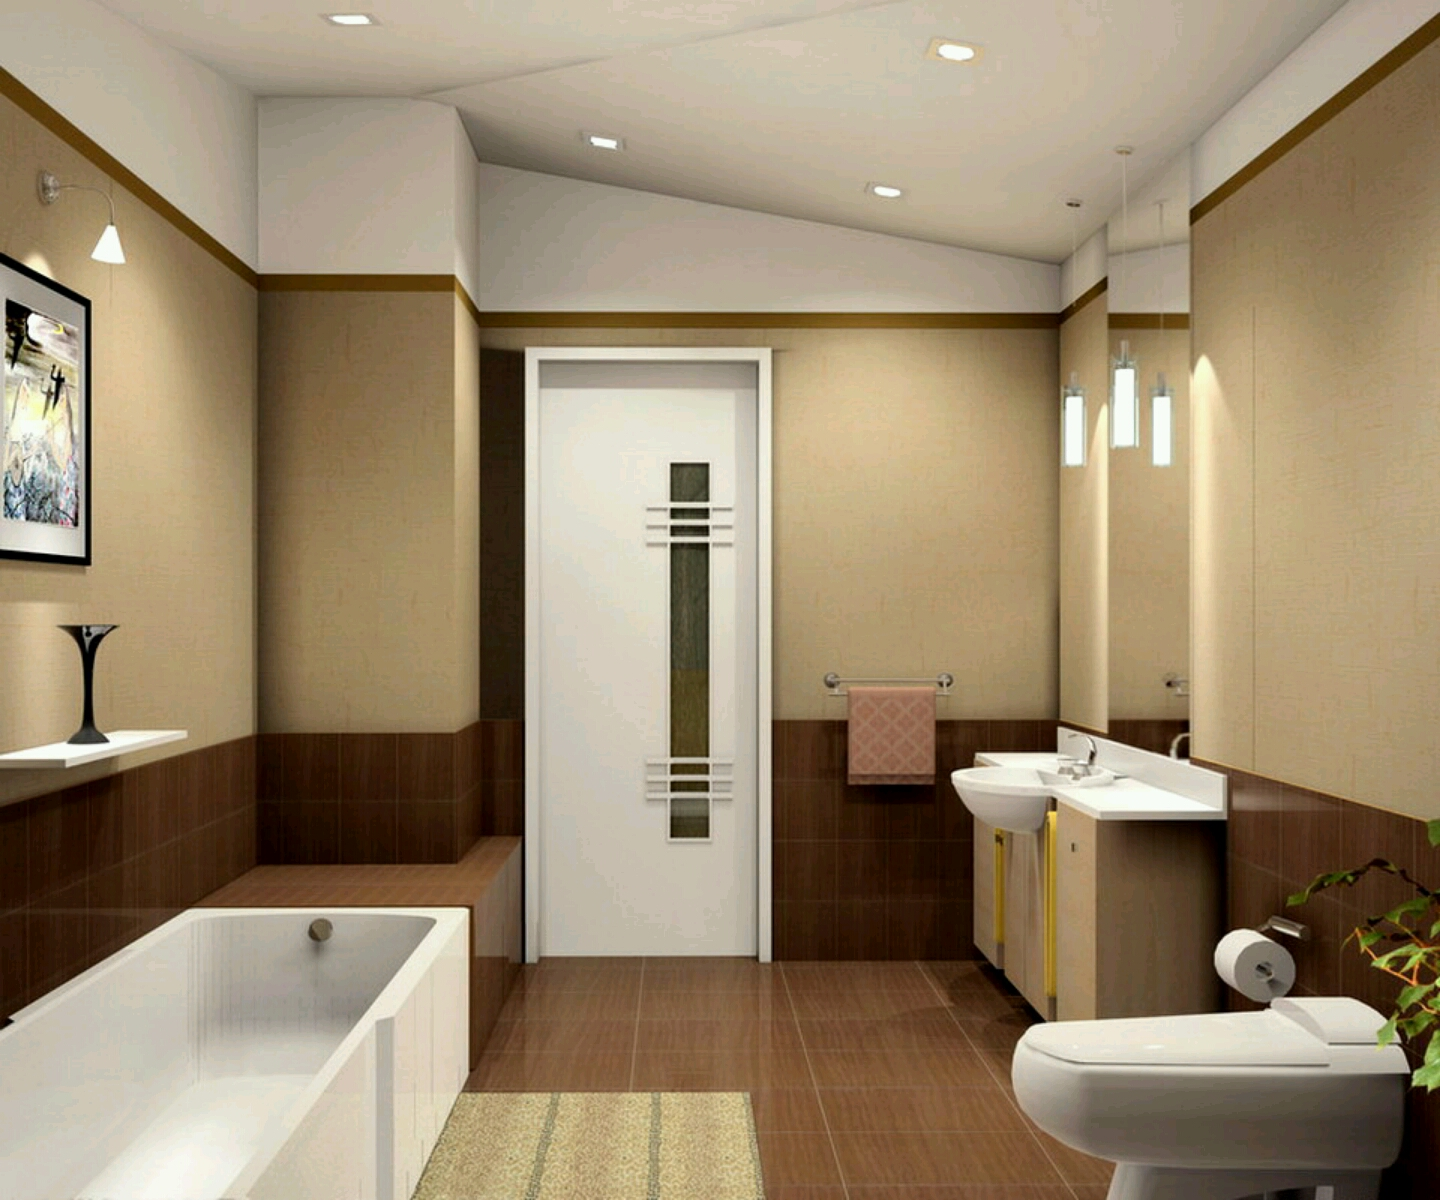 Modern bathrooms setting ideas furniture gallery for 2 bathroom